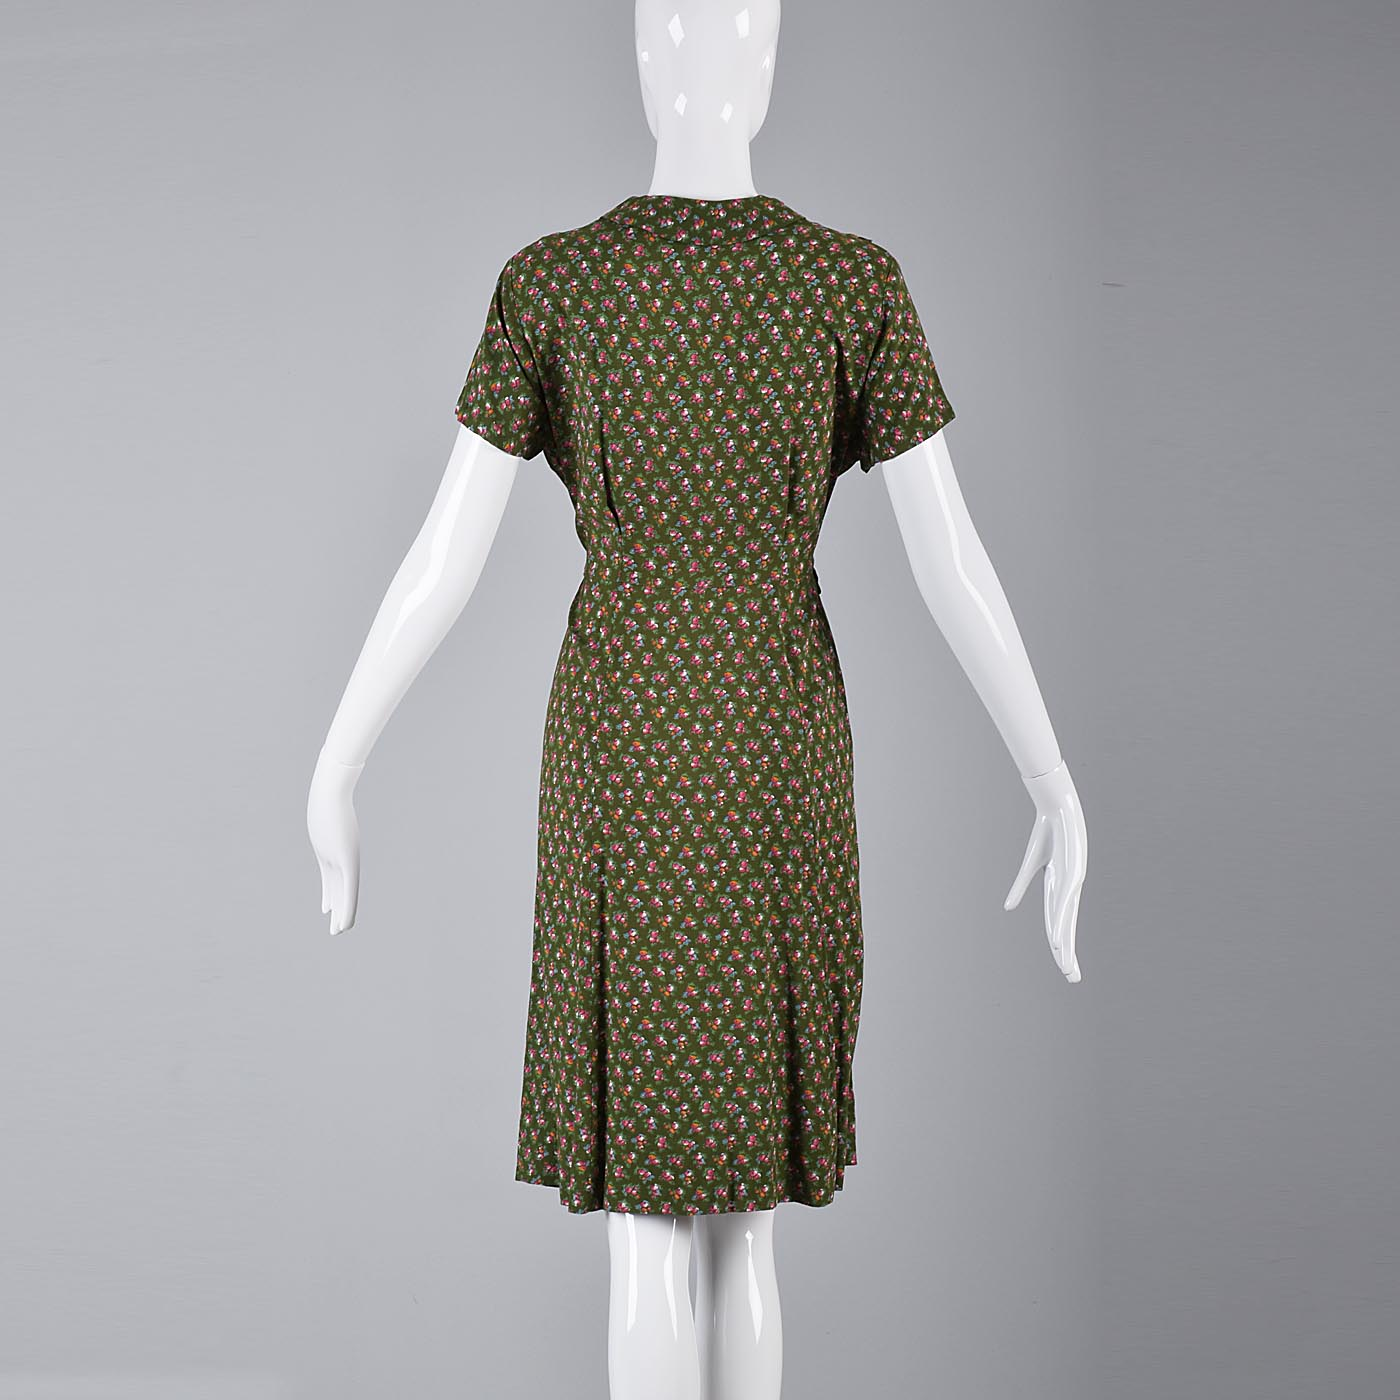 1940s Green Day Dress with Pink Floral Print